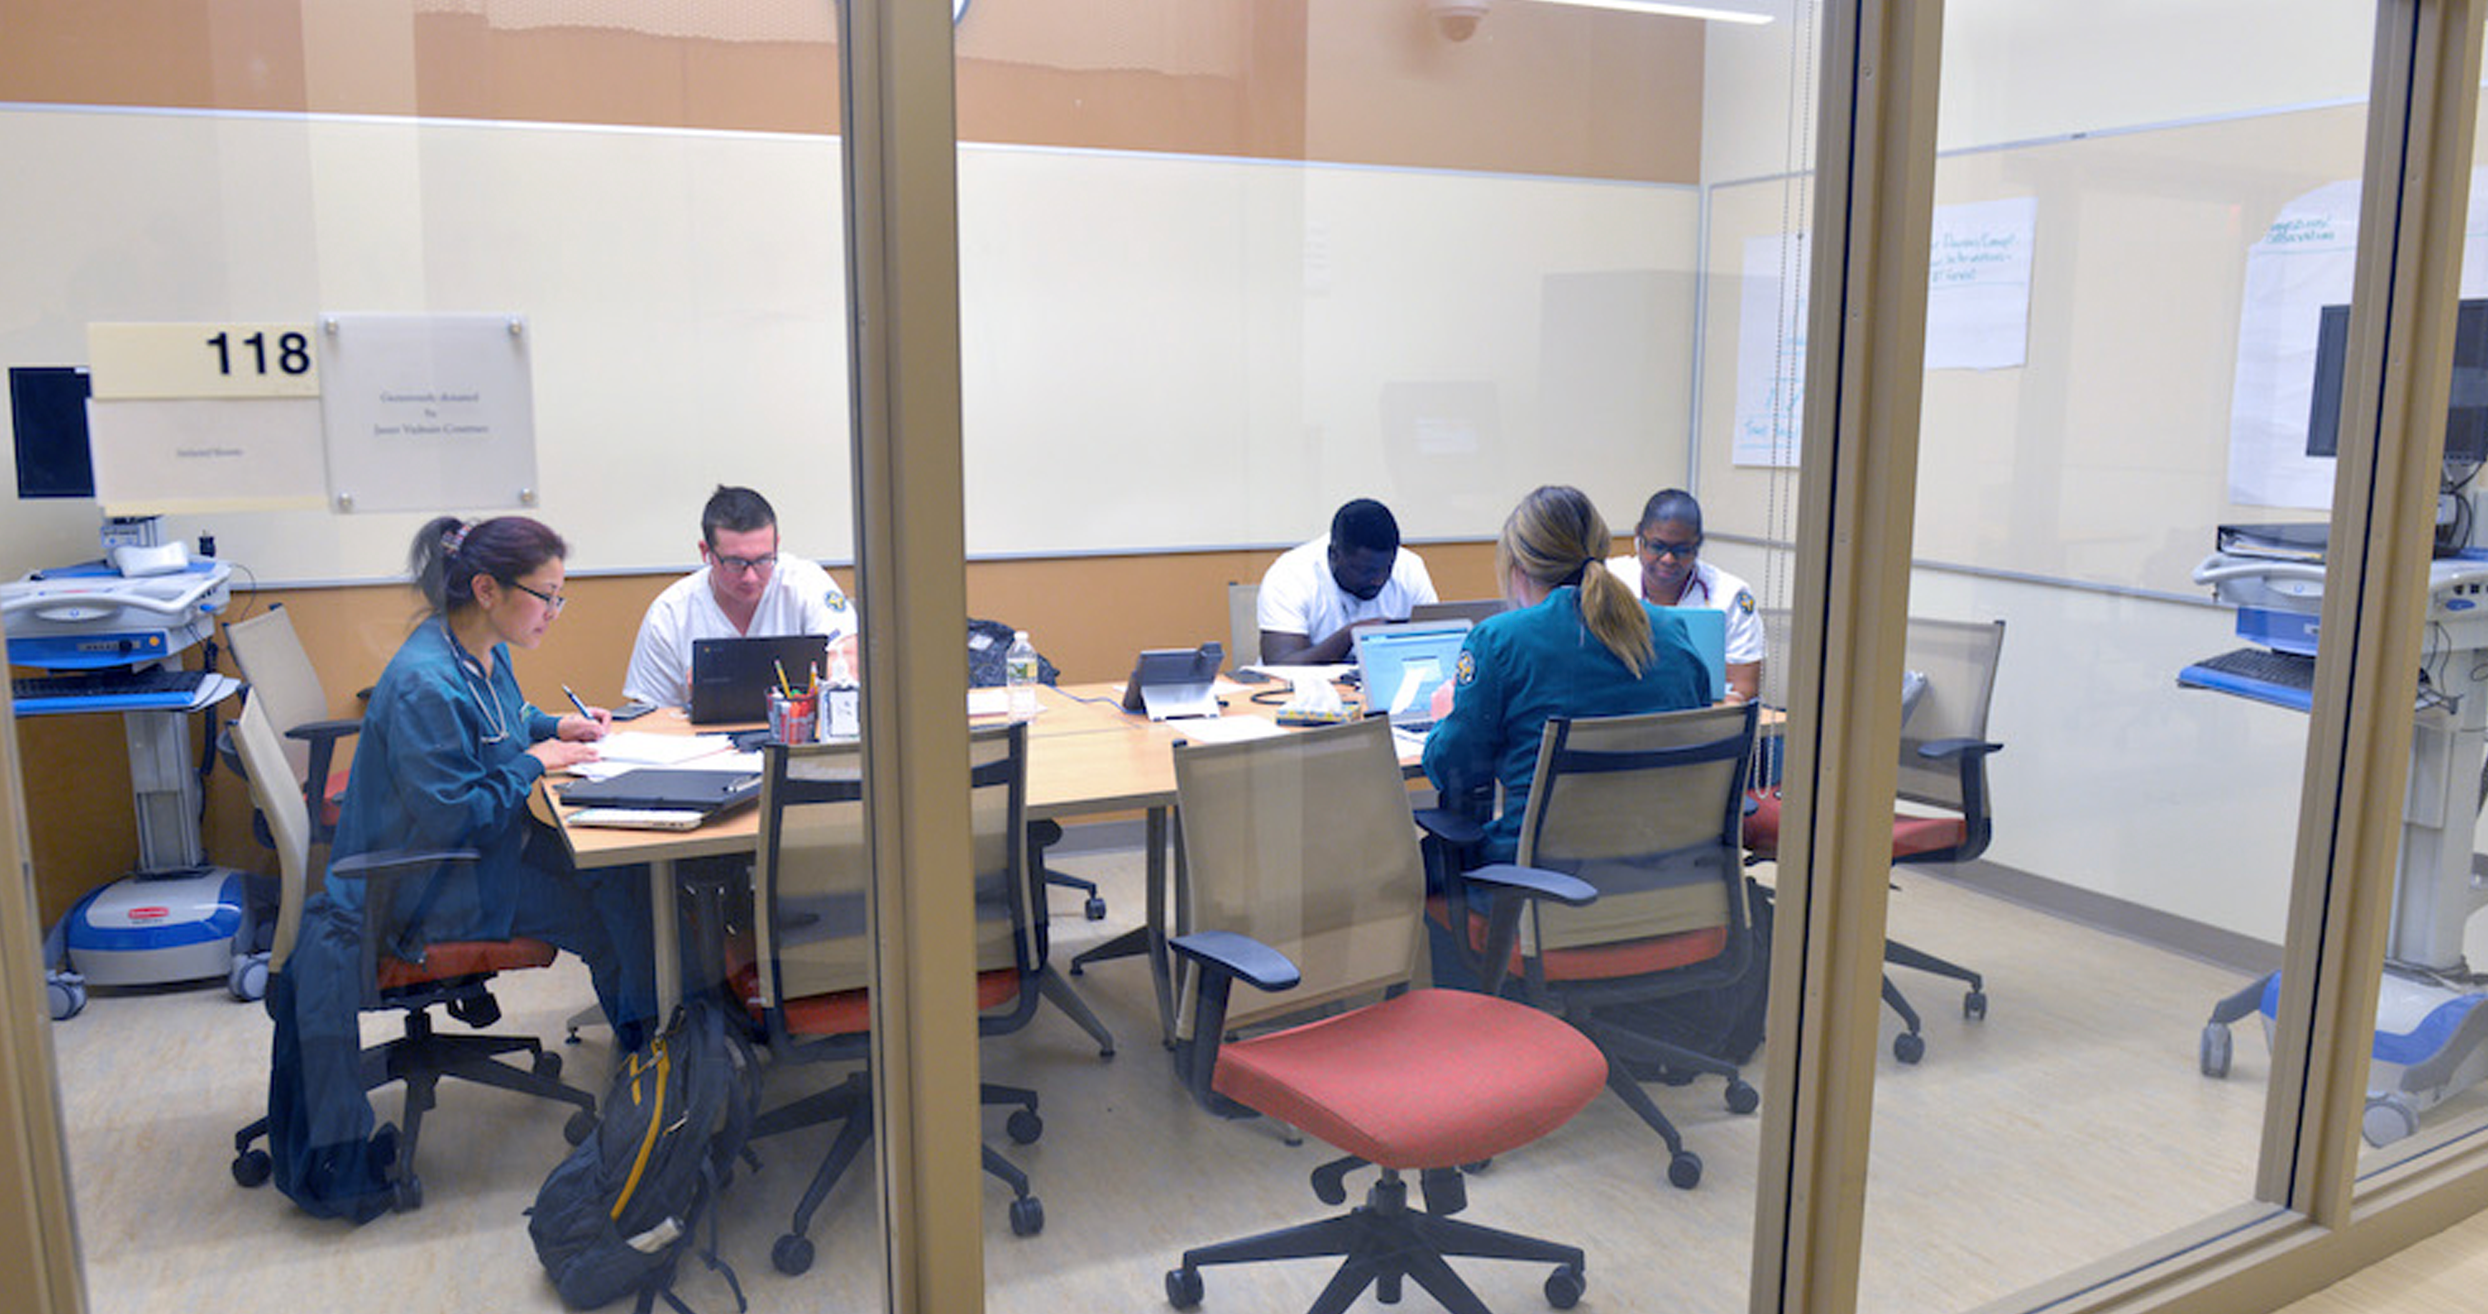 Healthcare students study together in a conference room